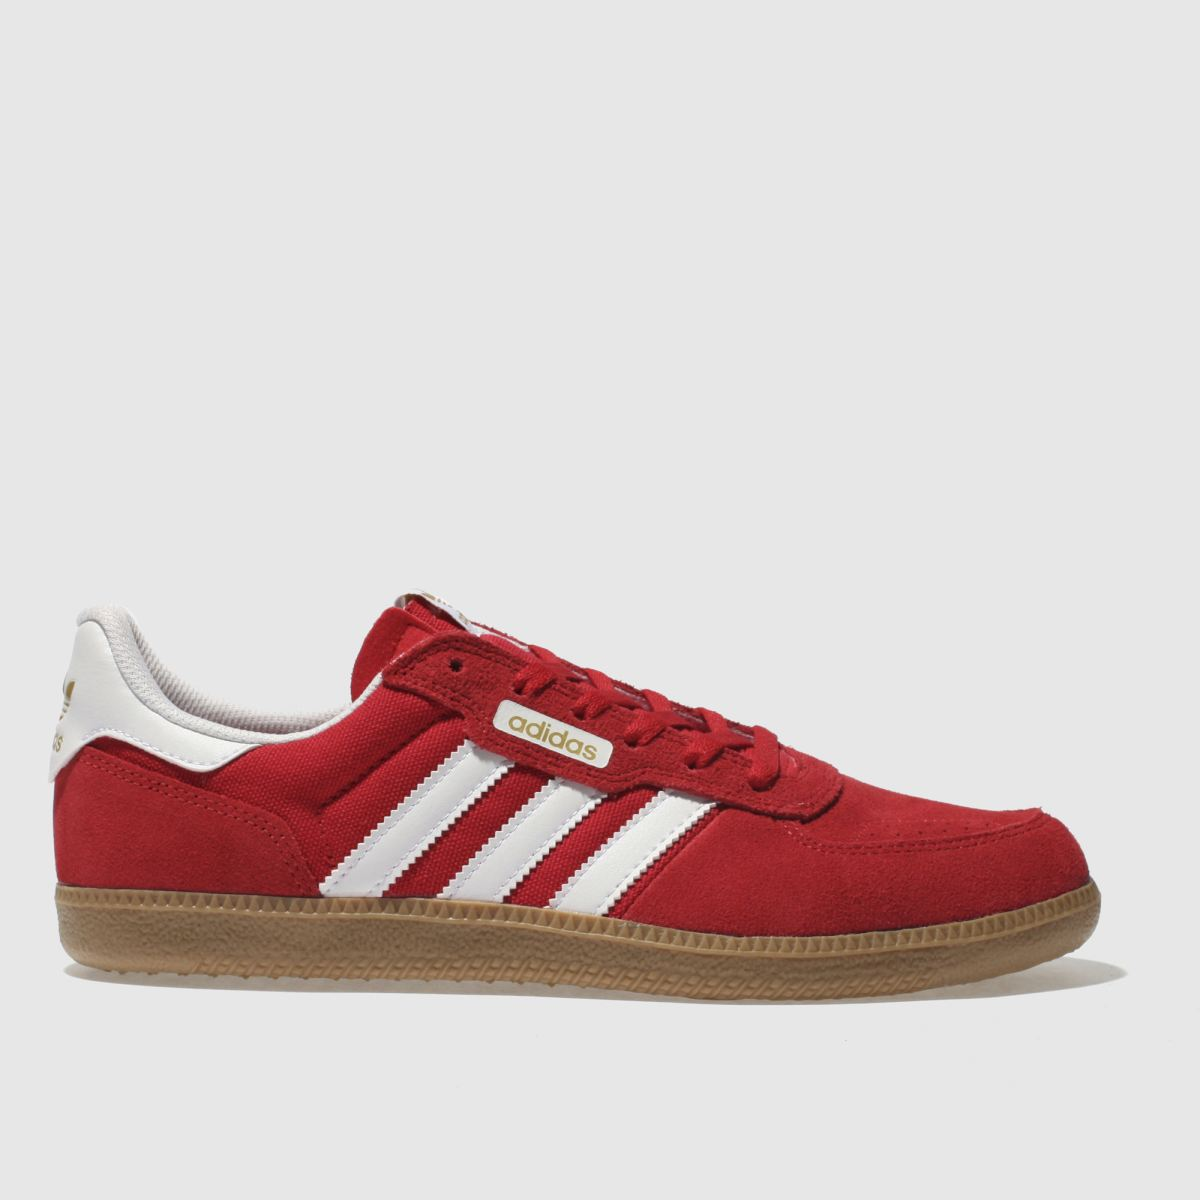 Adidas Skateboarding Red Leonero Trainers